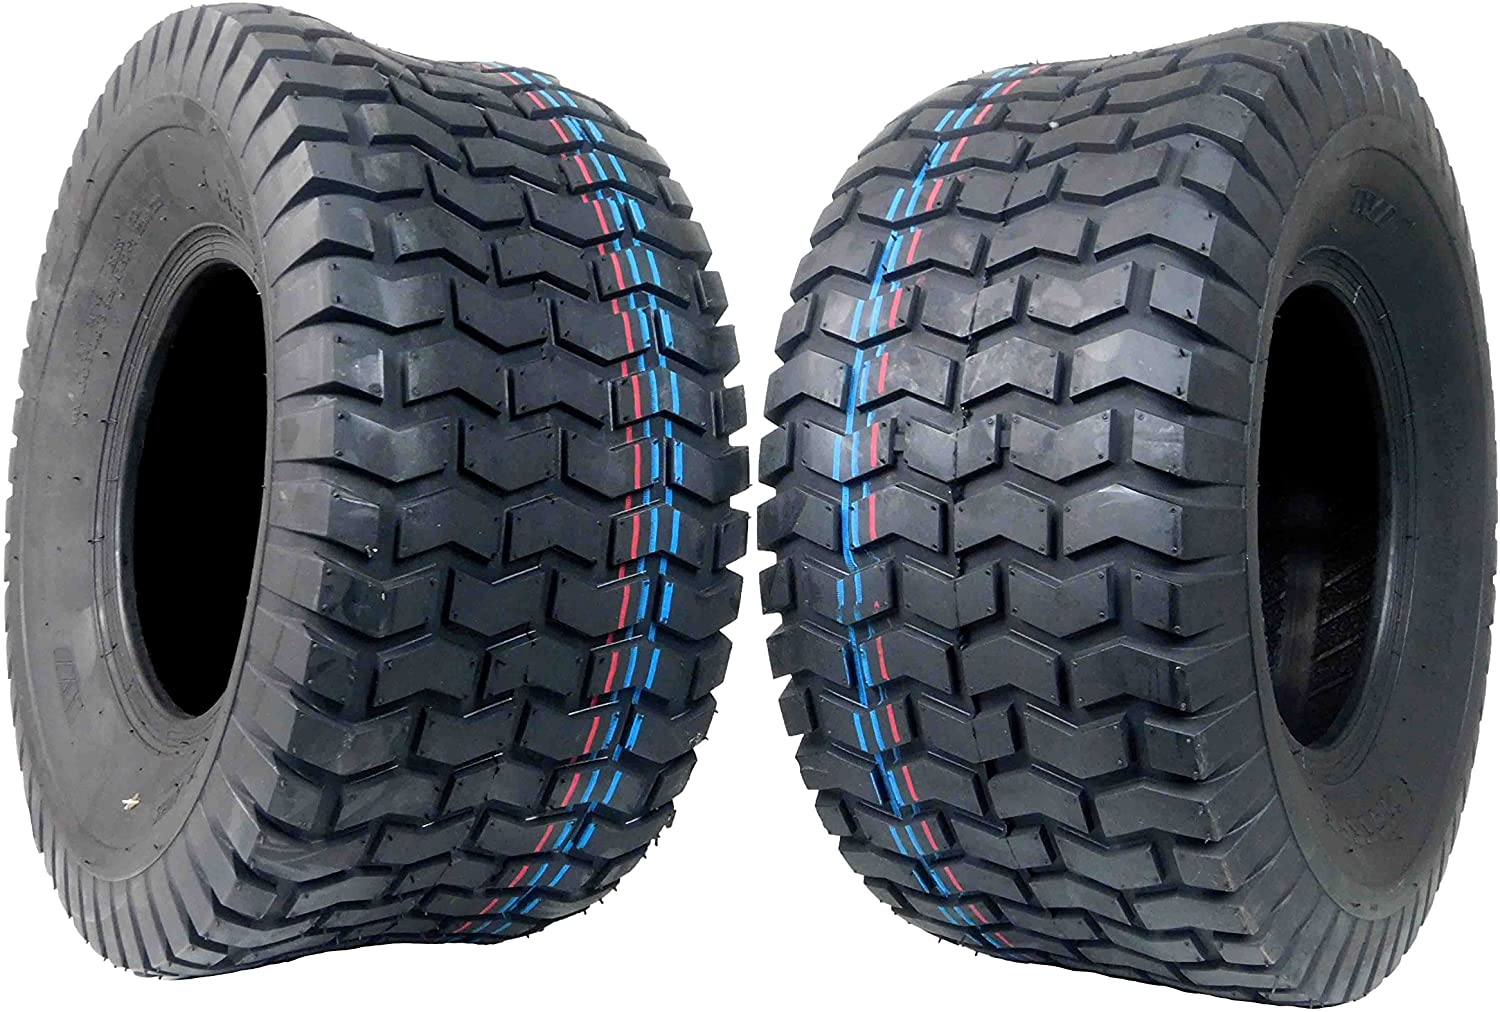 Tire 2 Set MASSFX Golf At 2021new shipping free shipping the price Cart Tires 18x8.5-8 Tre MO18858 4 PLY 5mm